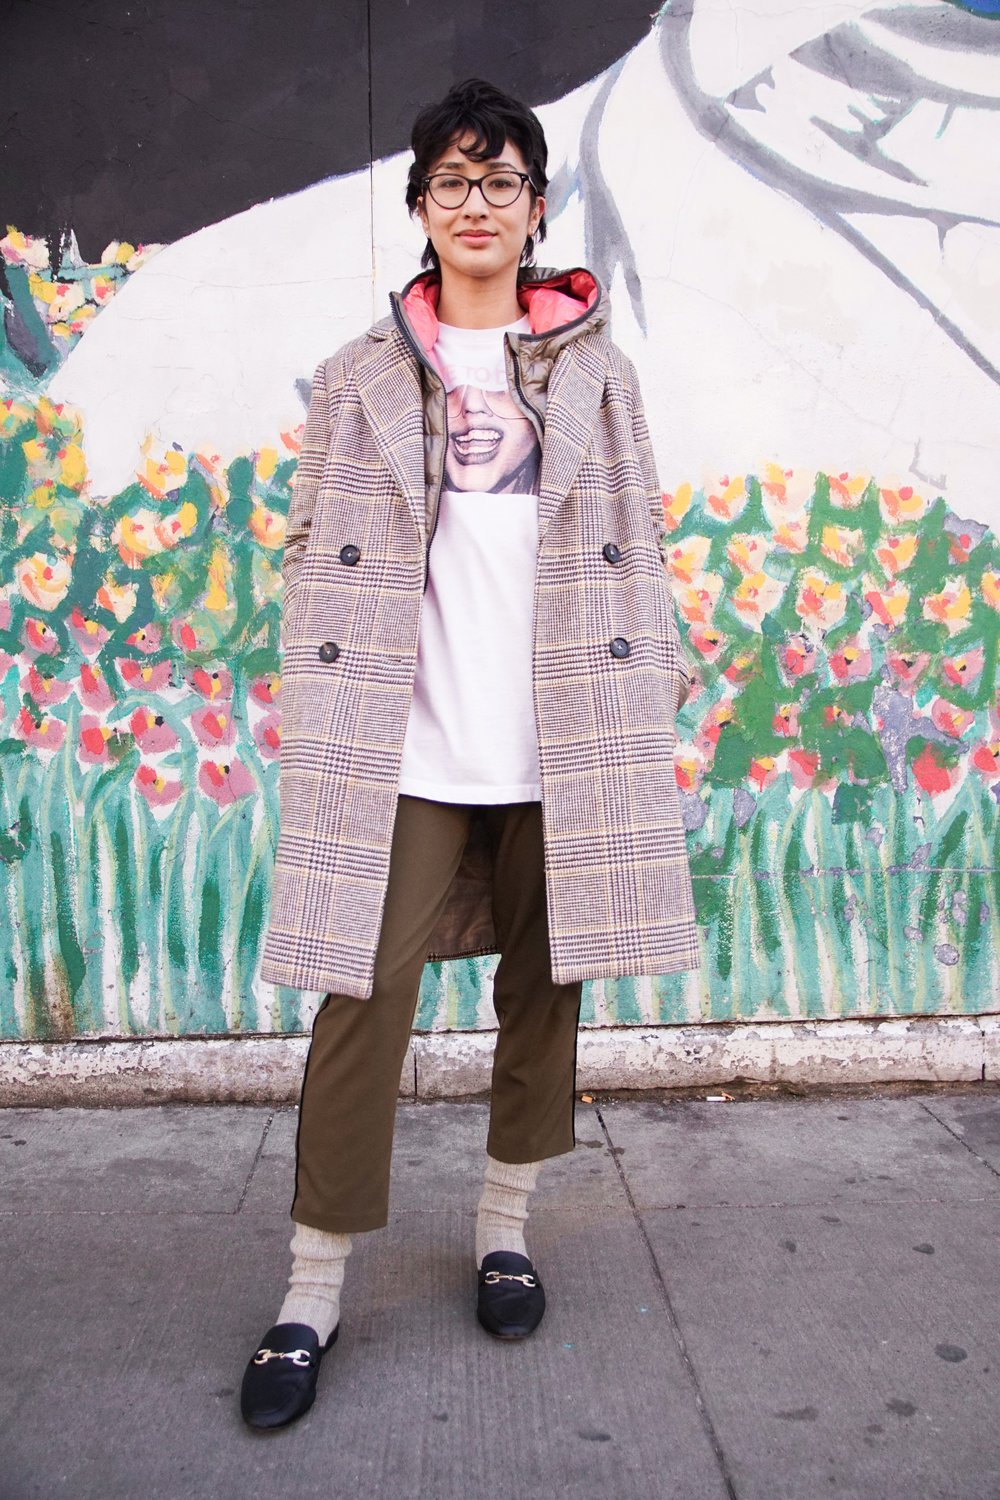 Week of march 30th - We caught our future Editor-In-Chief on the streets of AA, click to check out the look along with some other spring style inspirations.